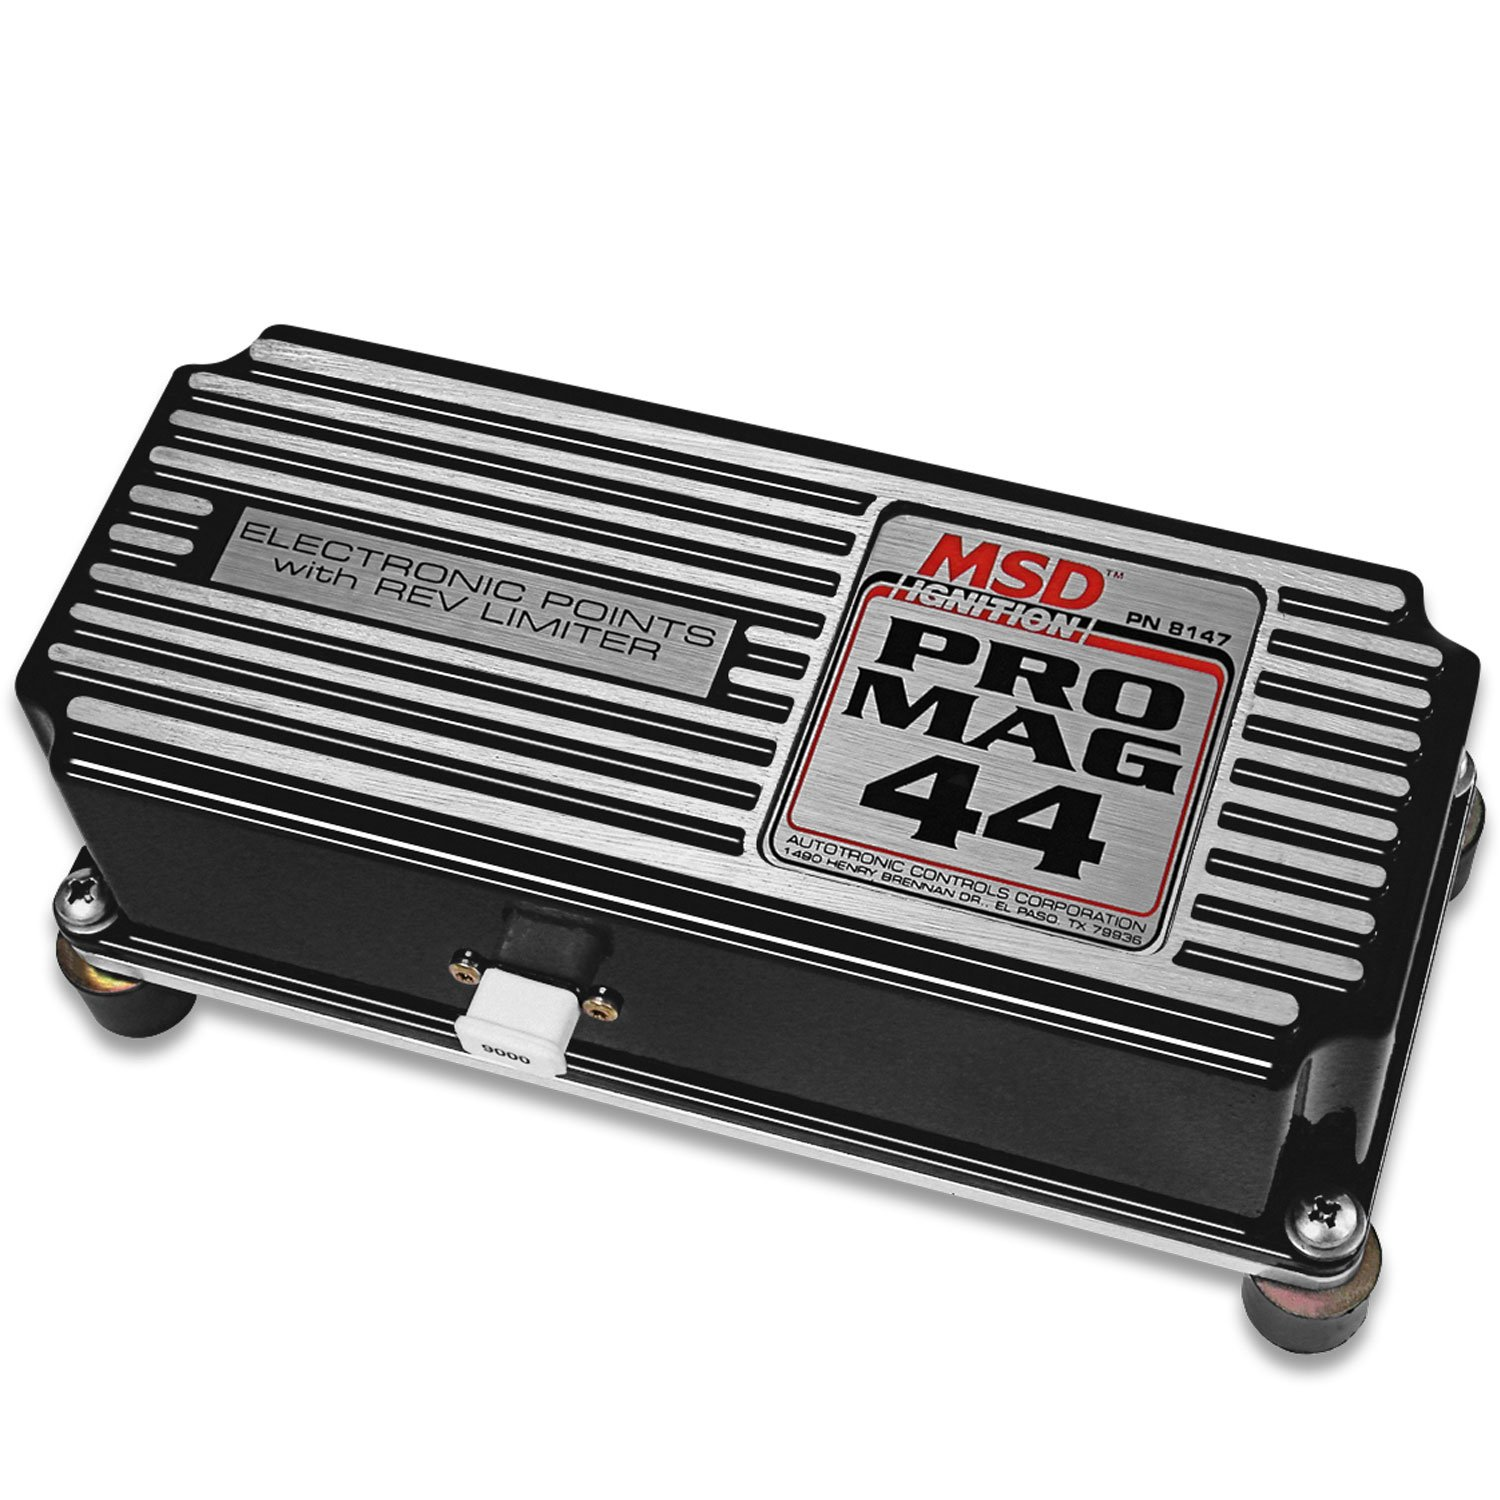 81473 - Pro Mag 44 Amp Electronic Points Box with Rev Limiter, Black Image